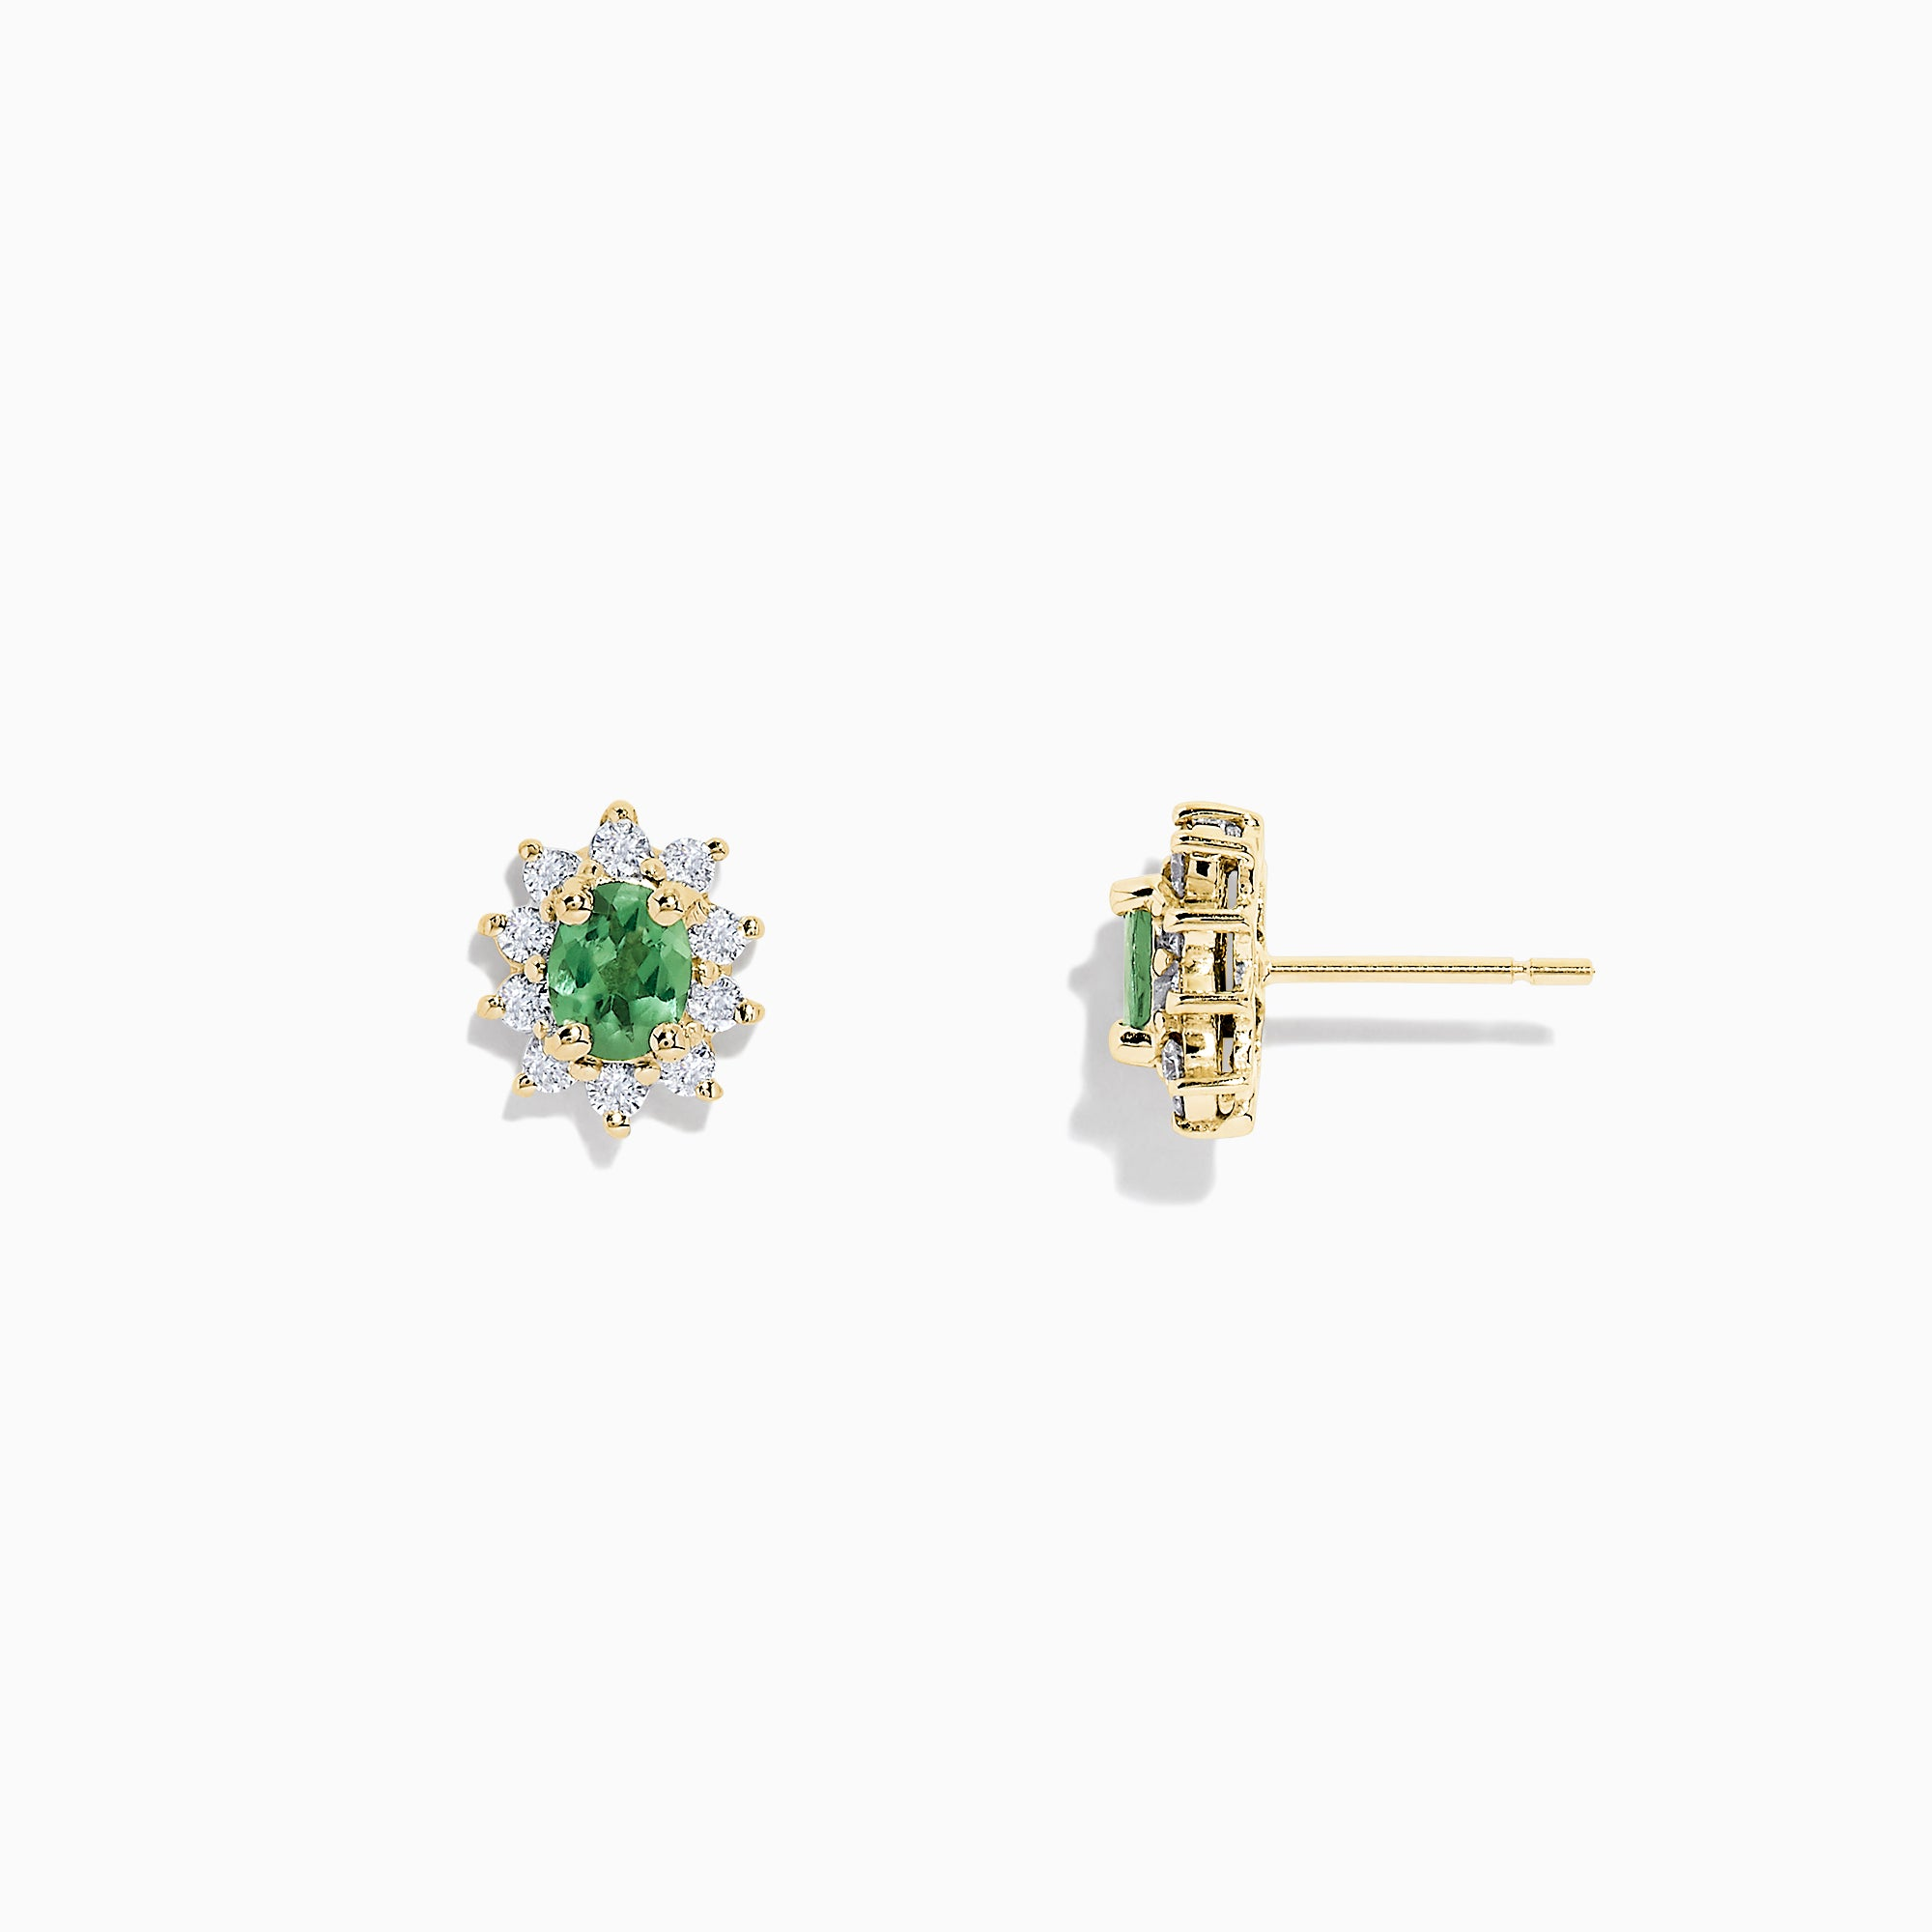 Effy 14K Yellow Gold Alexandrite and Diamond Earrings, 1.05 TCW